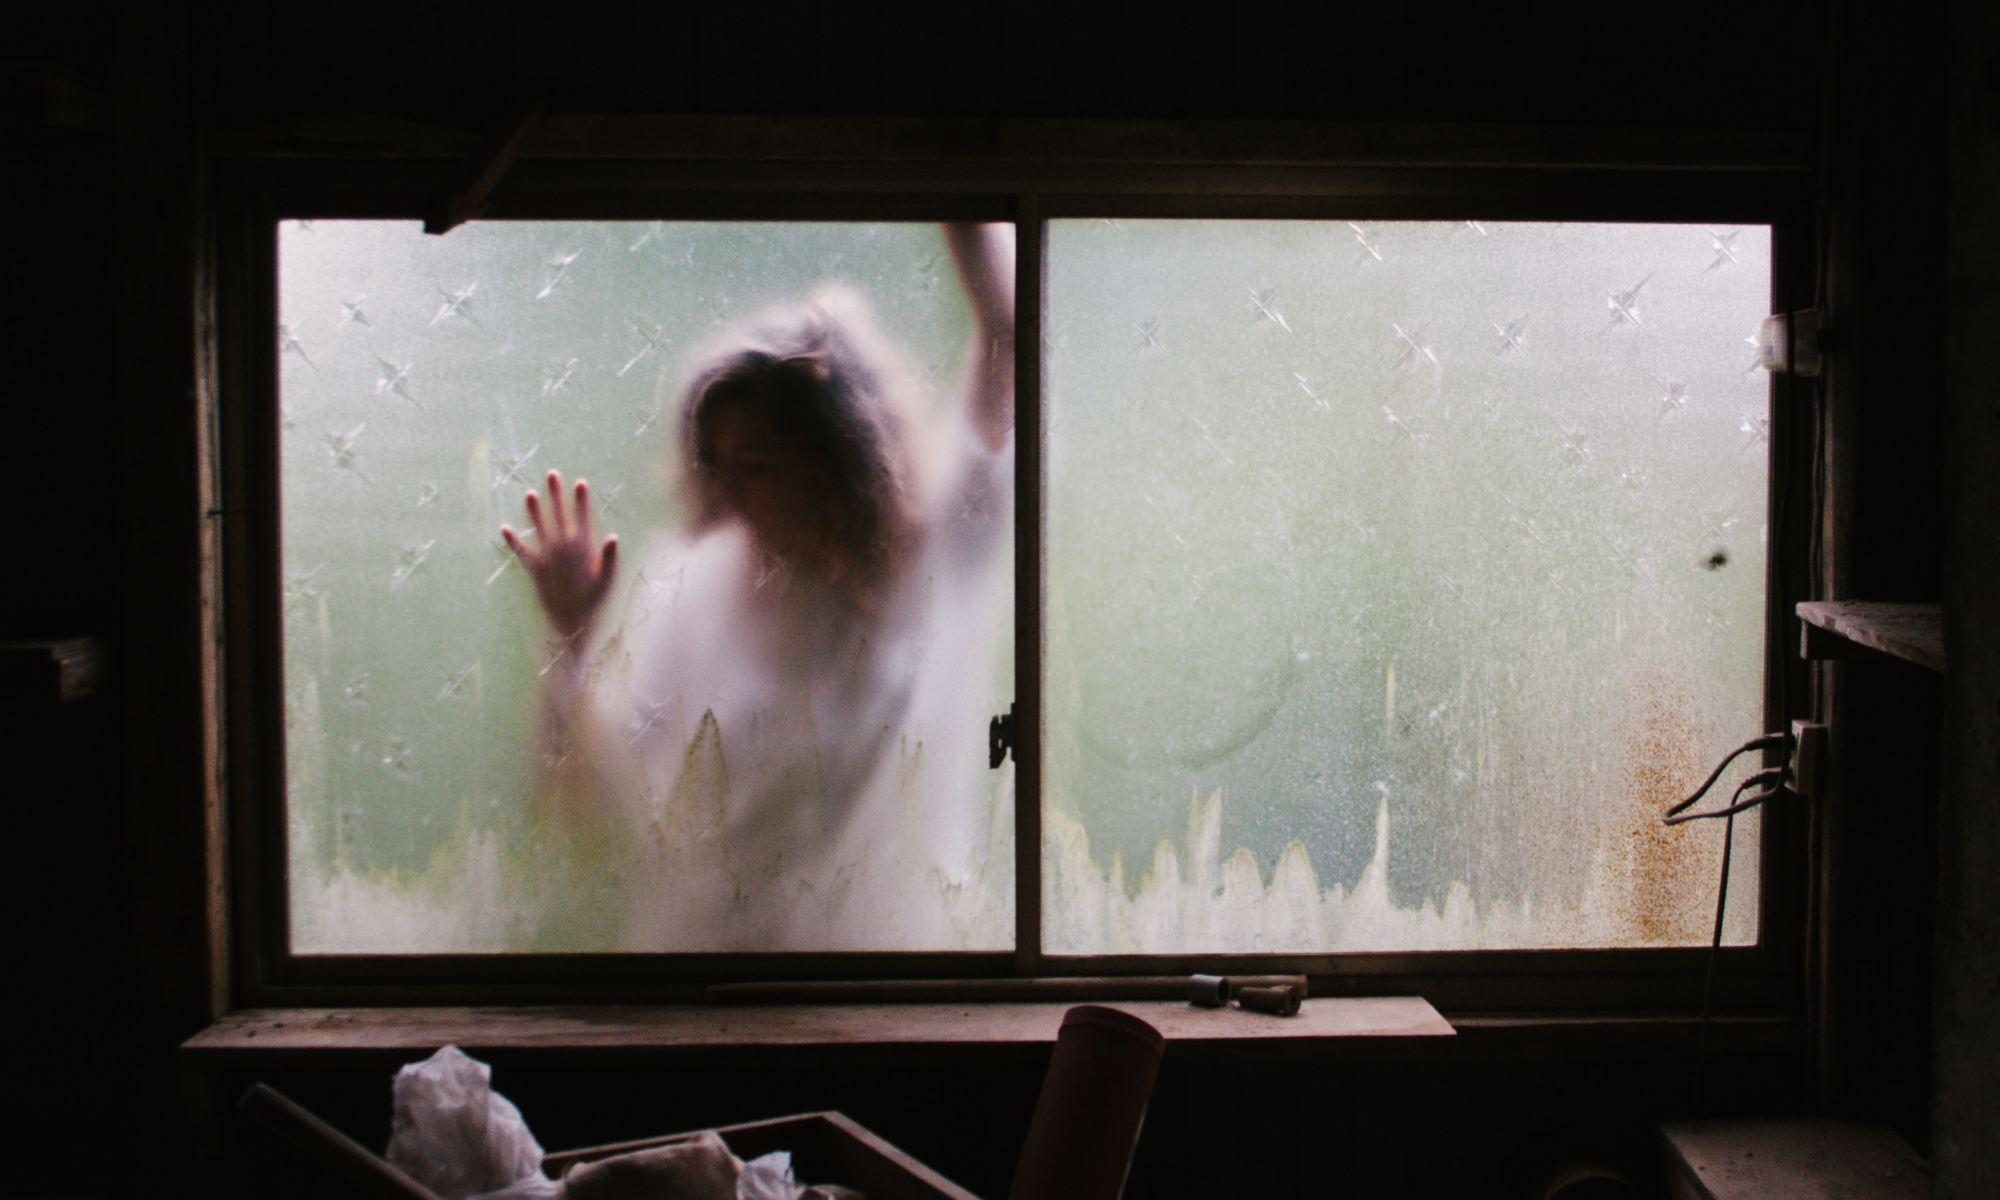 Person outside the window suffering from a mental illness and delusions